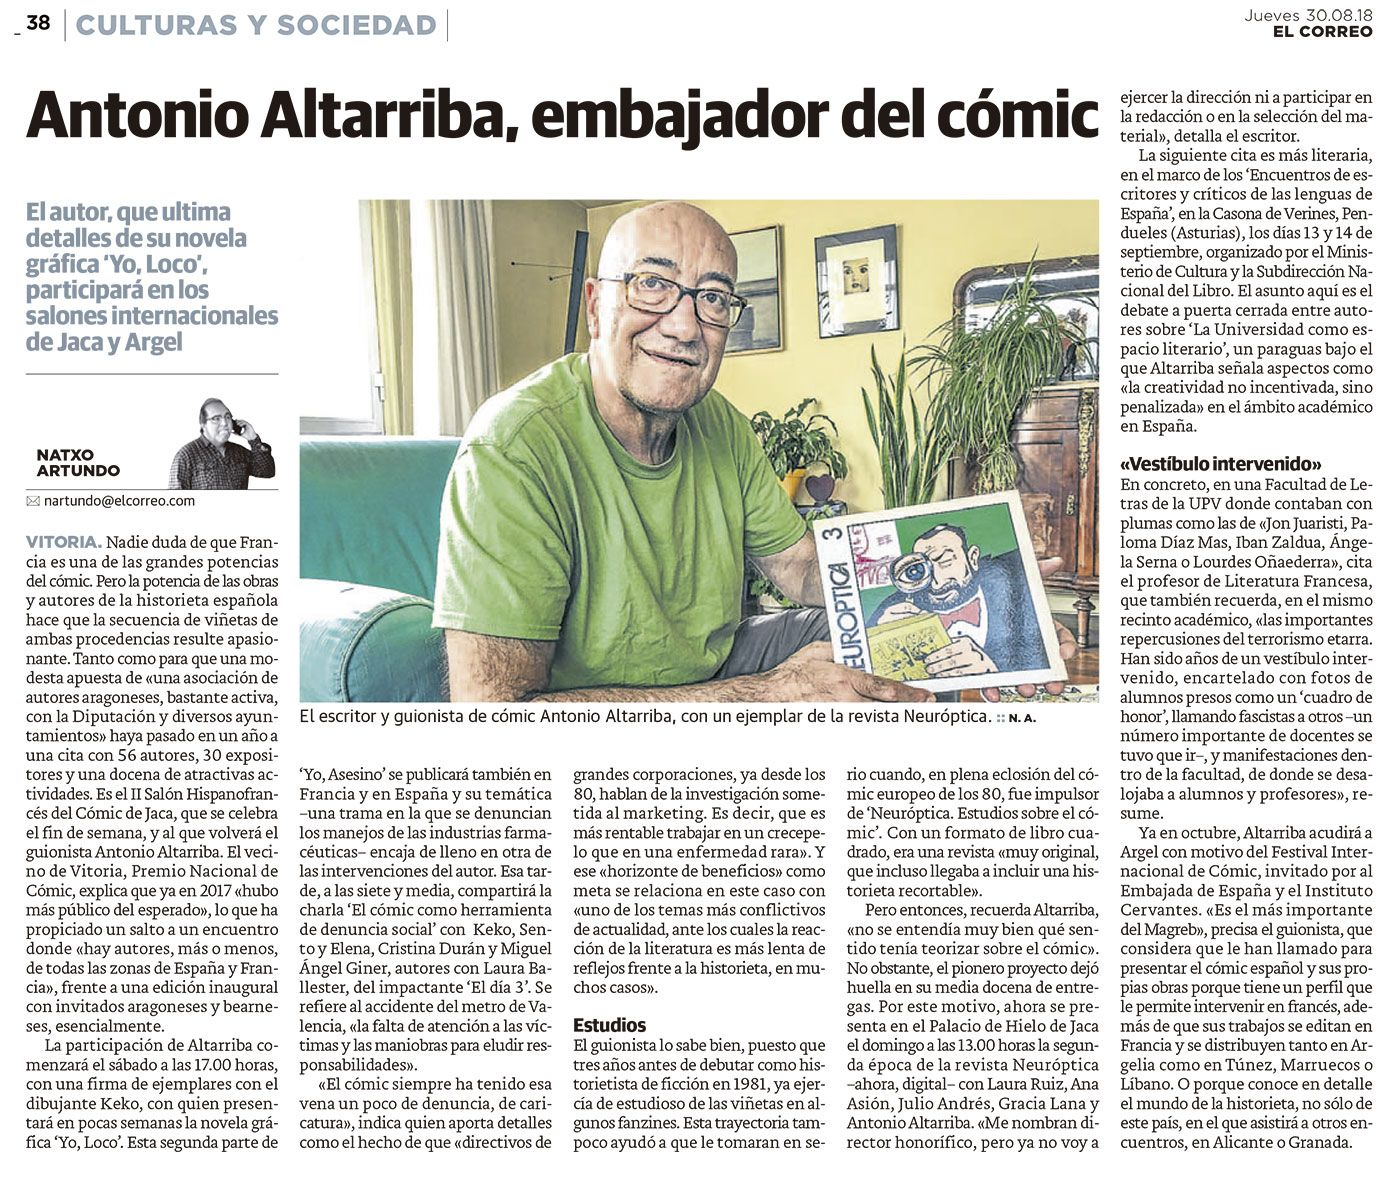 Antonio Altarriba, embajador del cómic